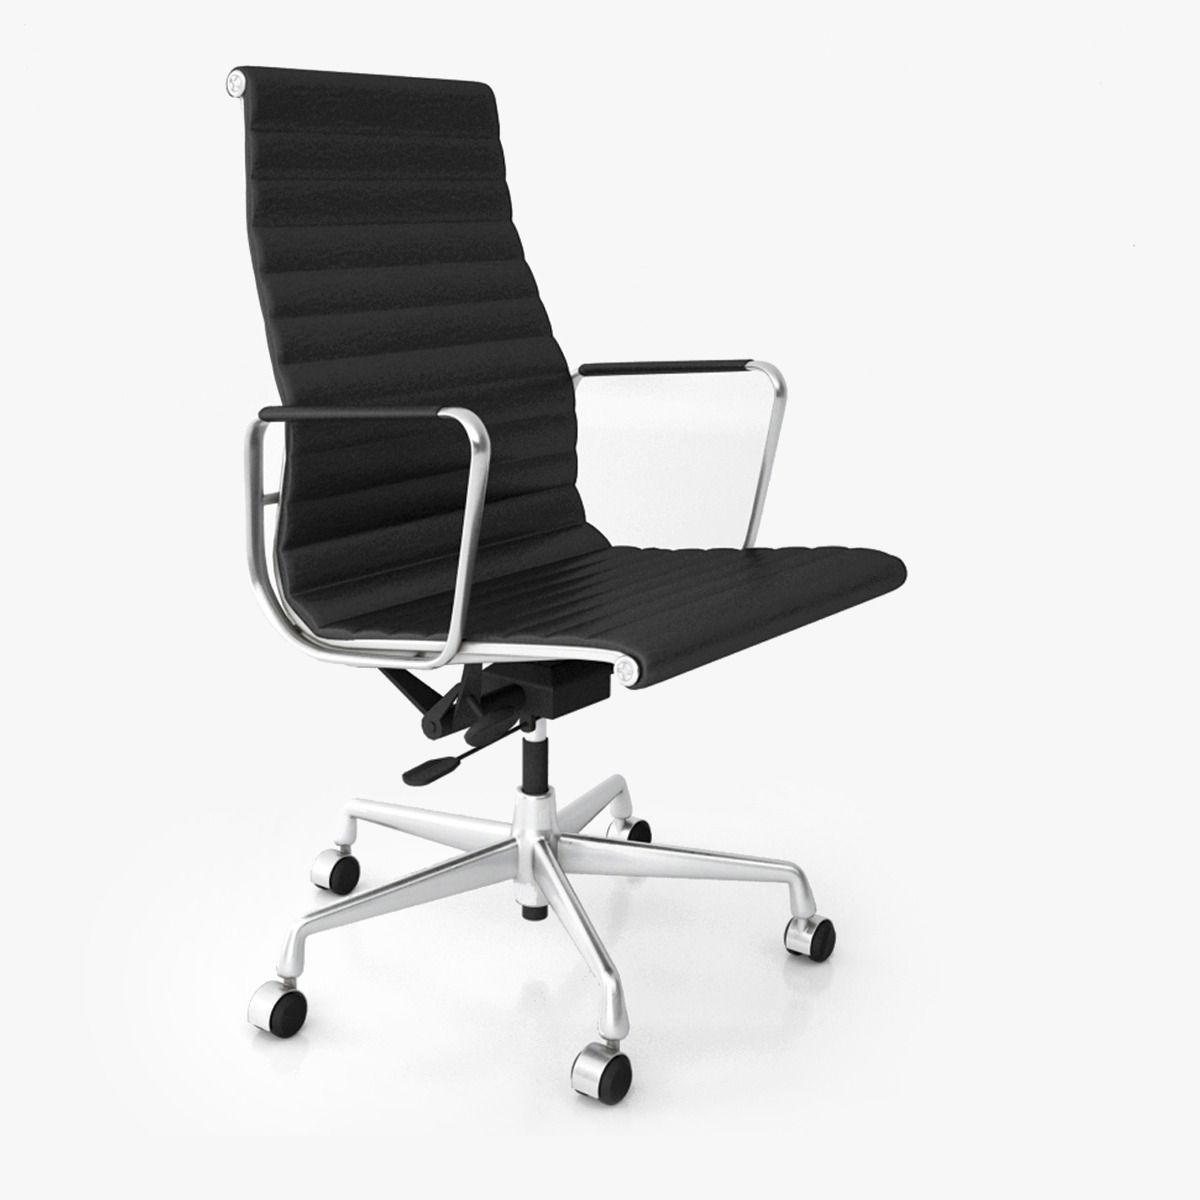 vitra aluminium office chair ea 119 3d model max obj fbx. Black Bedroom Furniture Sets. Home Design Ideas